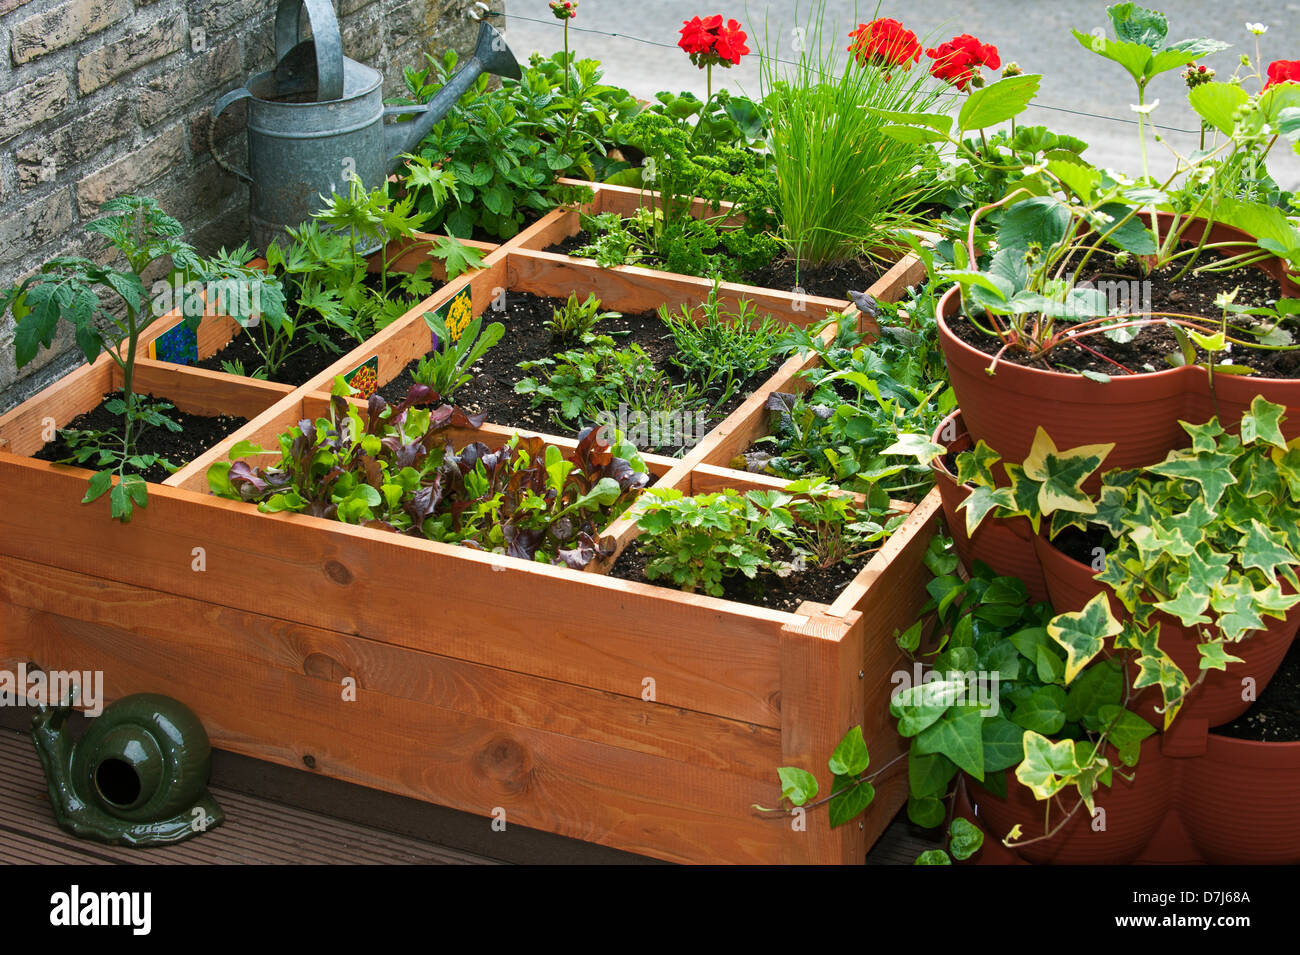 Attrayant Square Foot Gardening By Planting Flowers, Herbs And Vegetables In Wooden  Box On Balcony